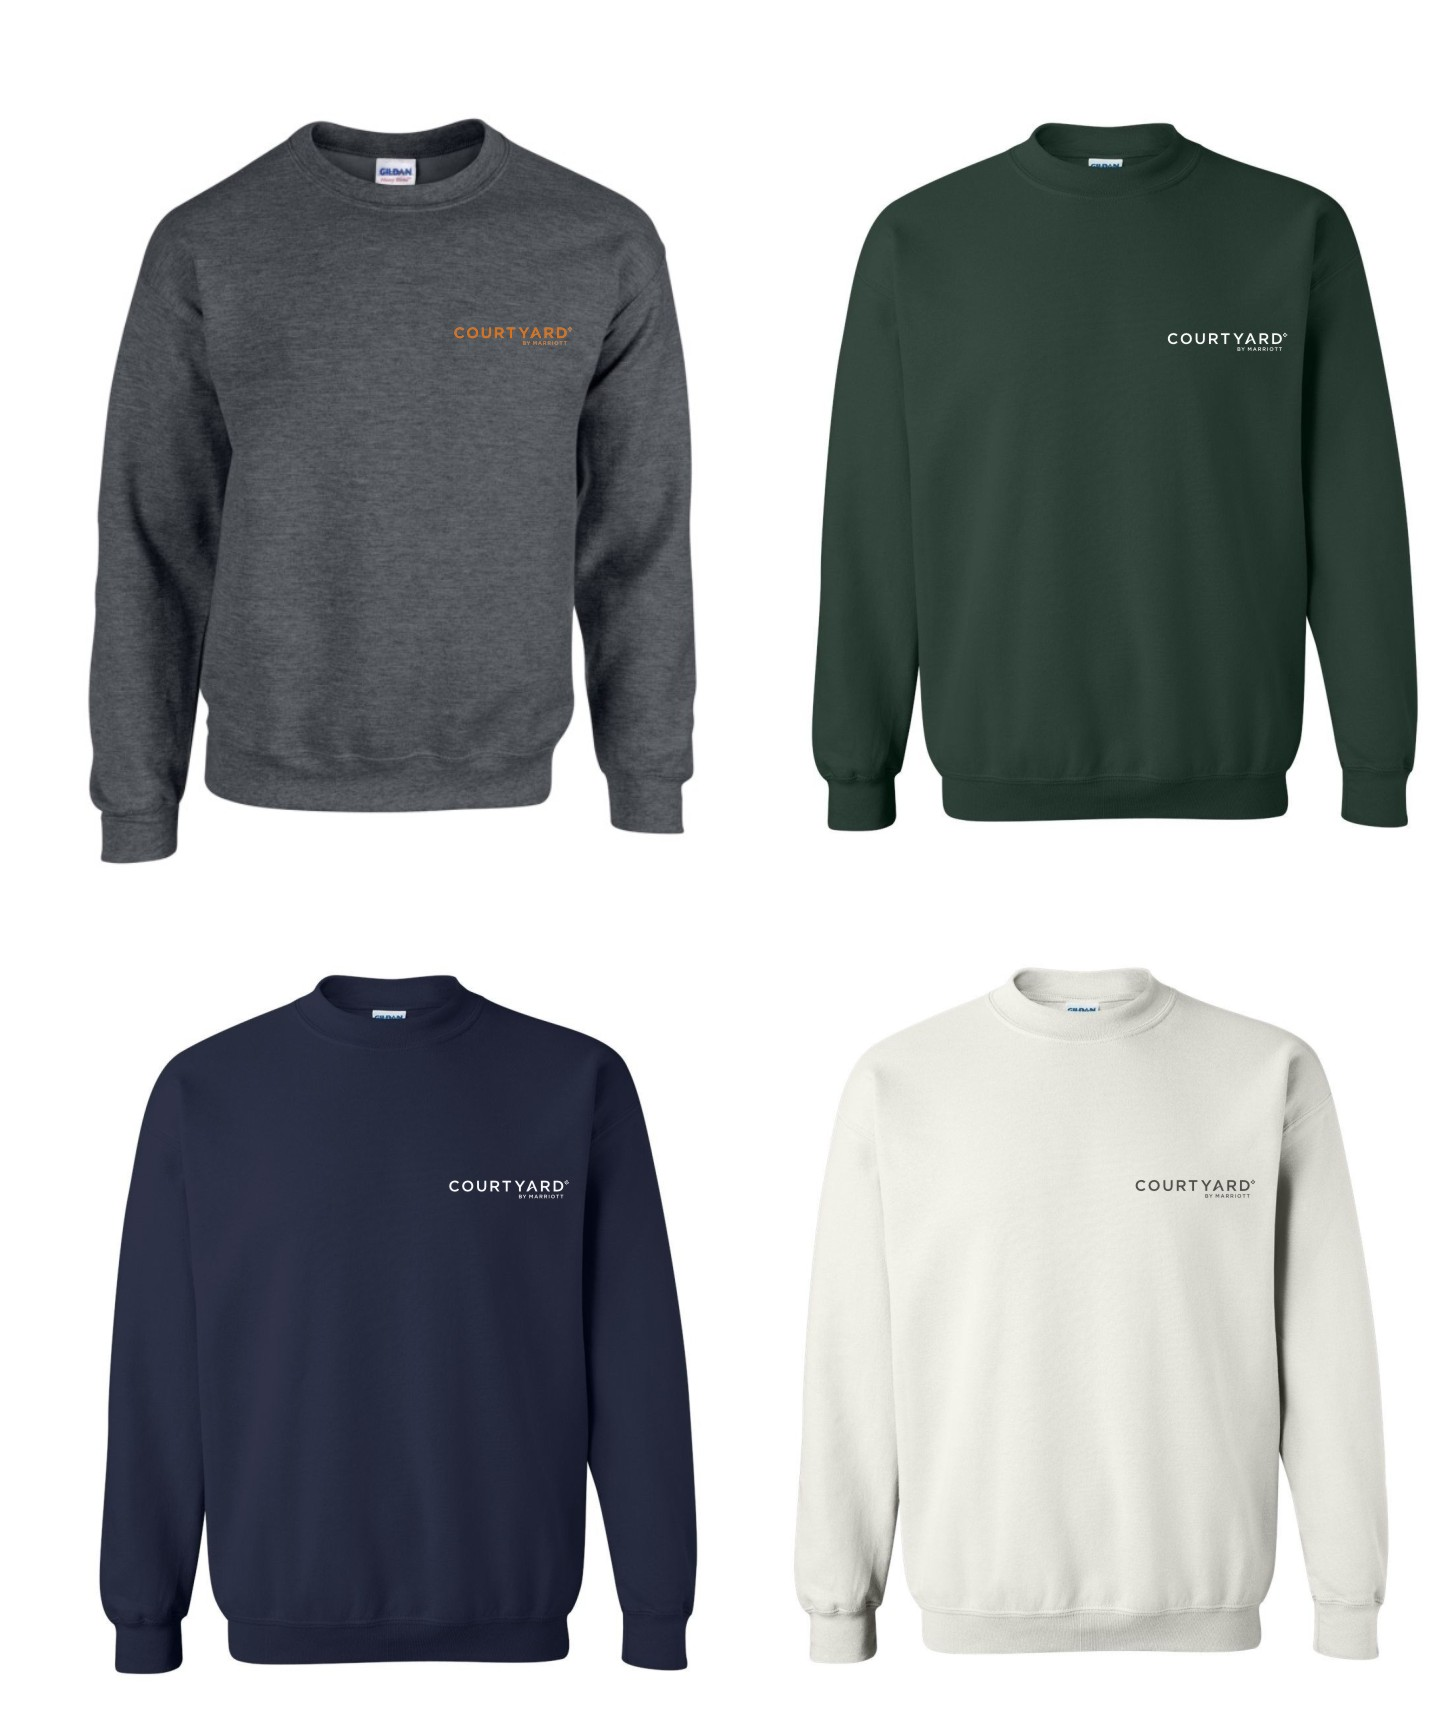 Sweatshirts, Crewneck.  50/50 Heavy Blend - Dark Heather, Hunter Green, Navy Blue and White.